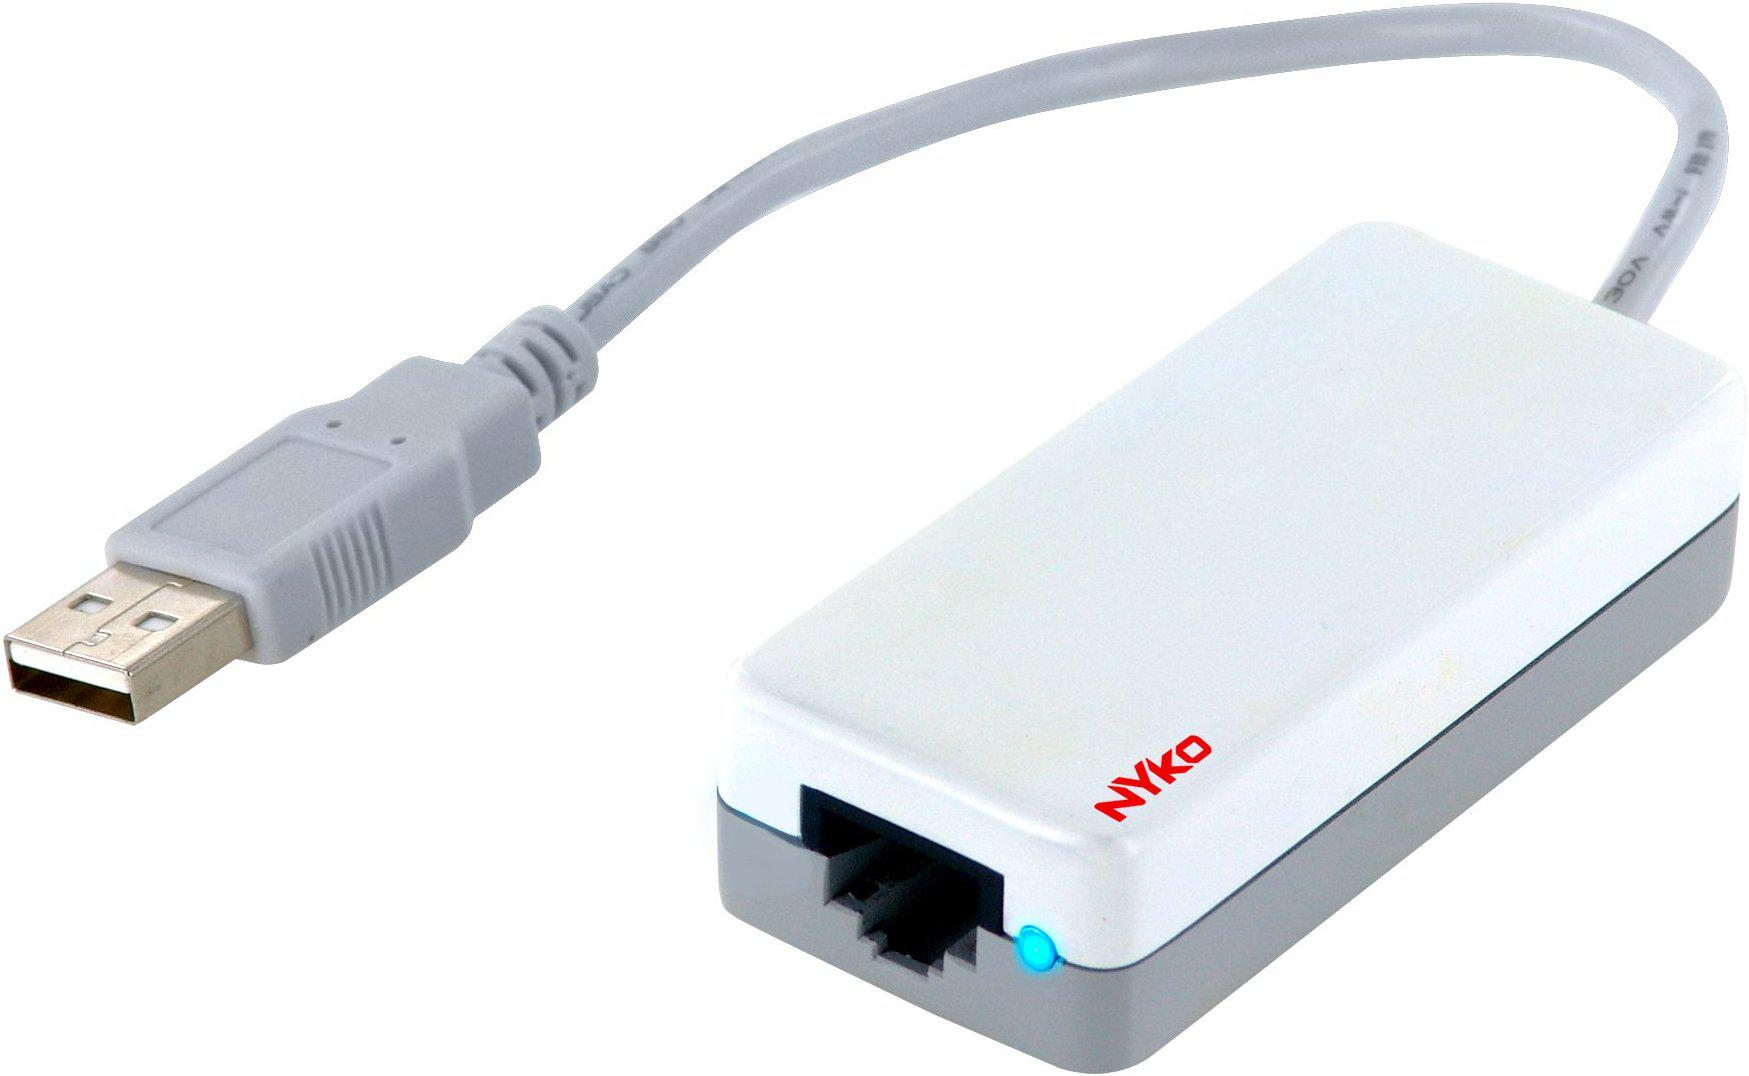 NET CONNECT ADAPTADOR LAN WIIU-WII